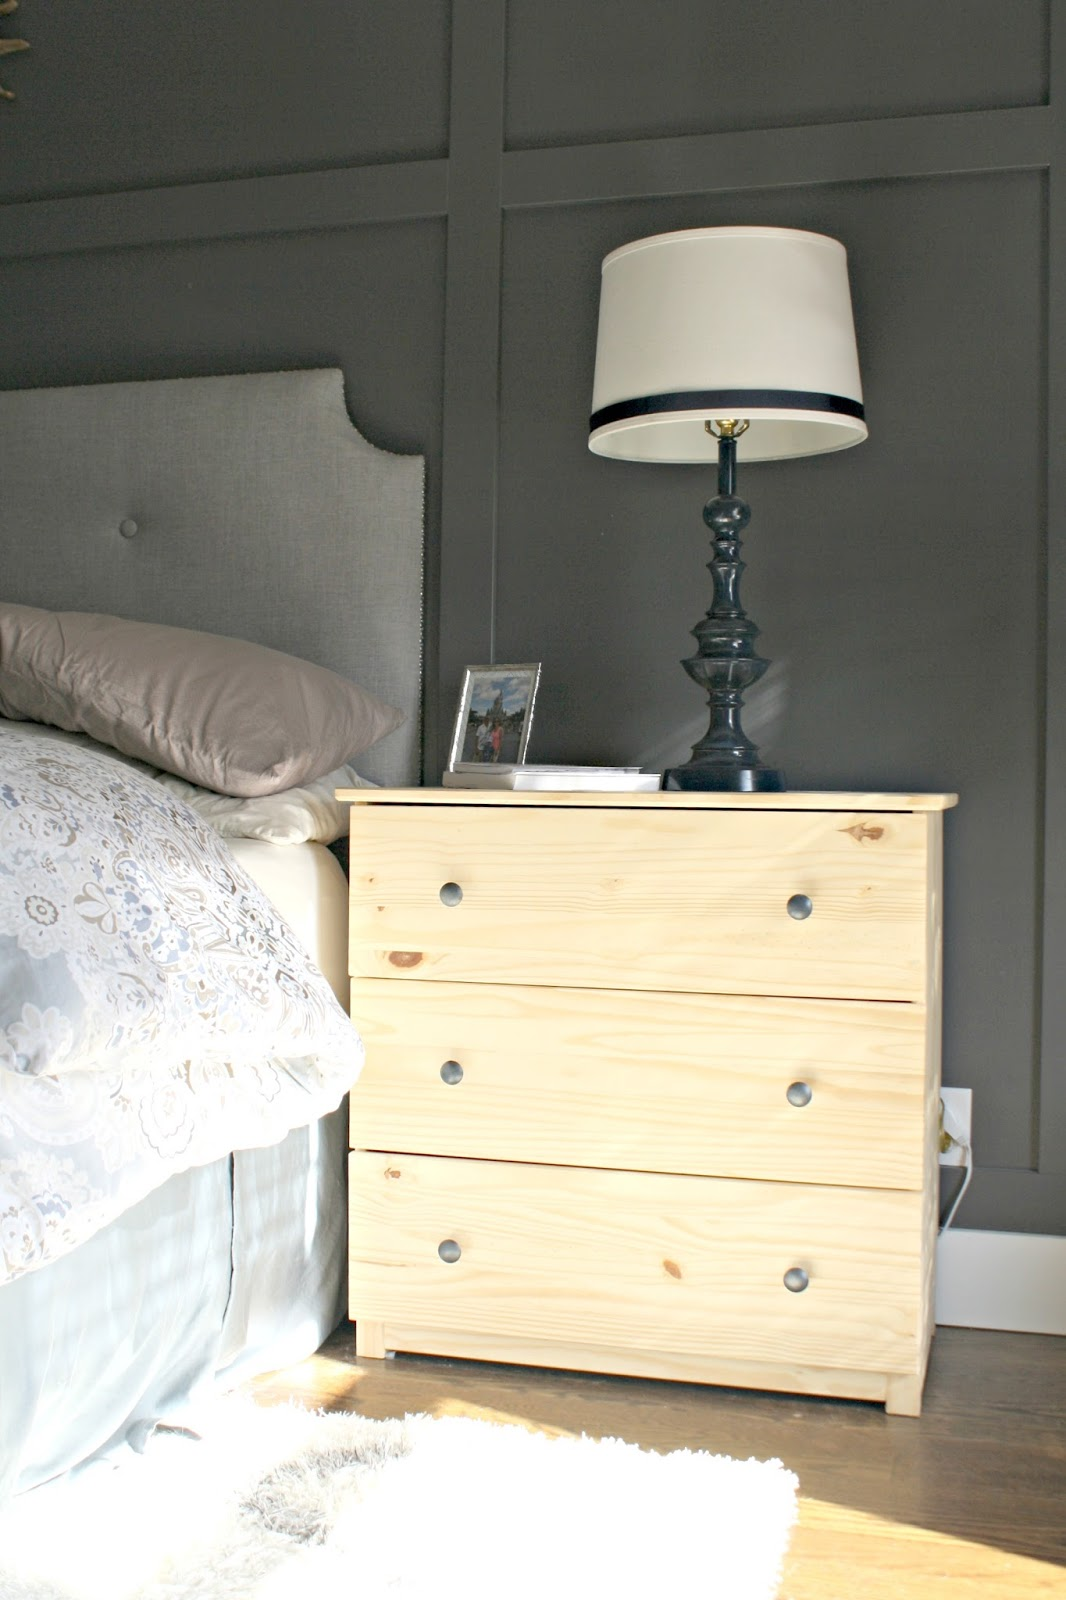 Old Ikea Nightstands Ikea Tarva transformation